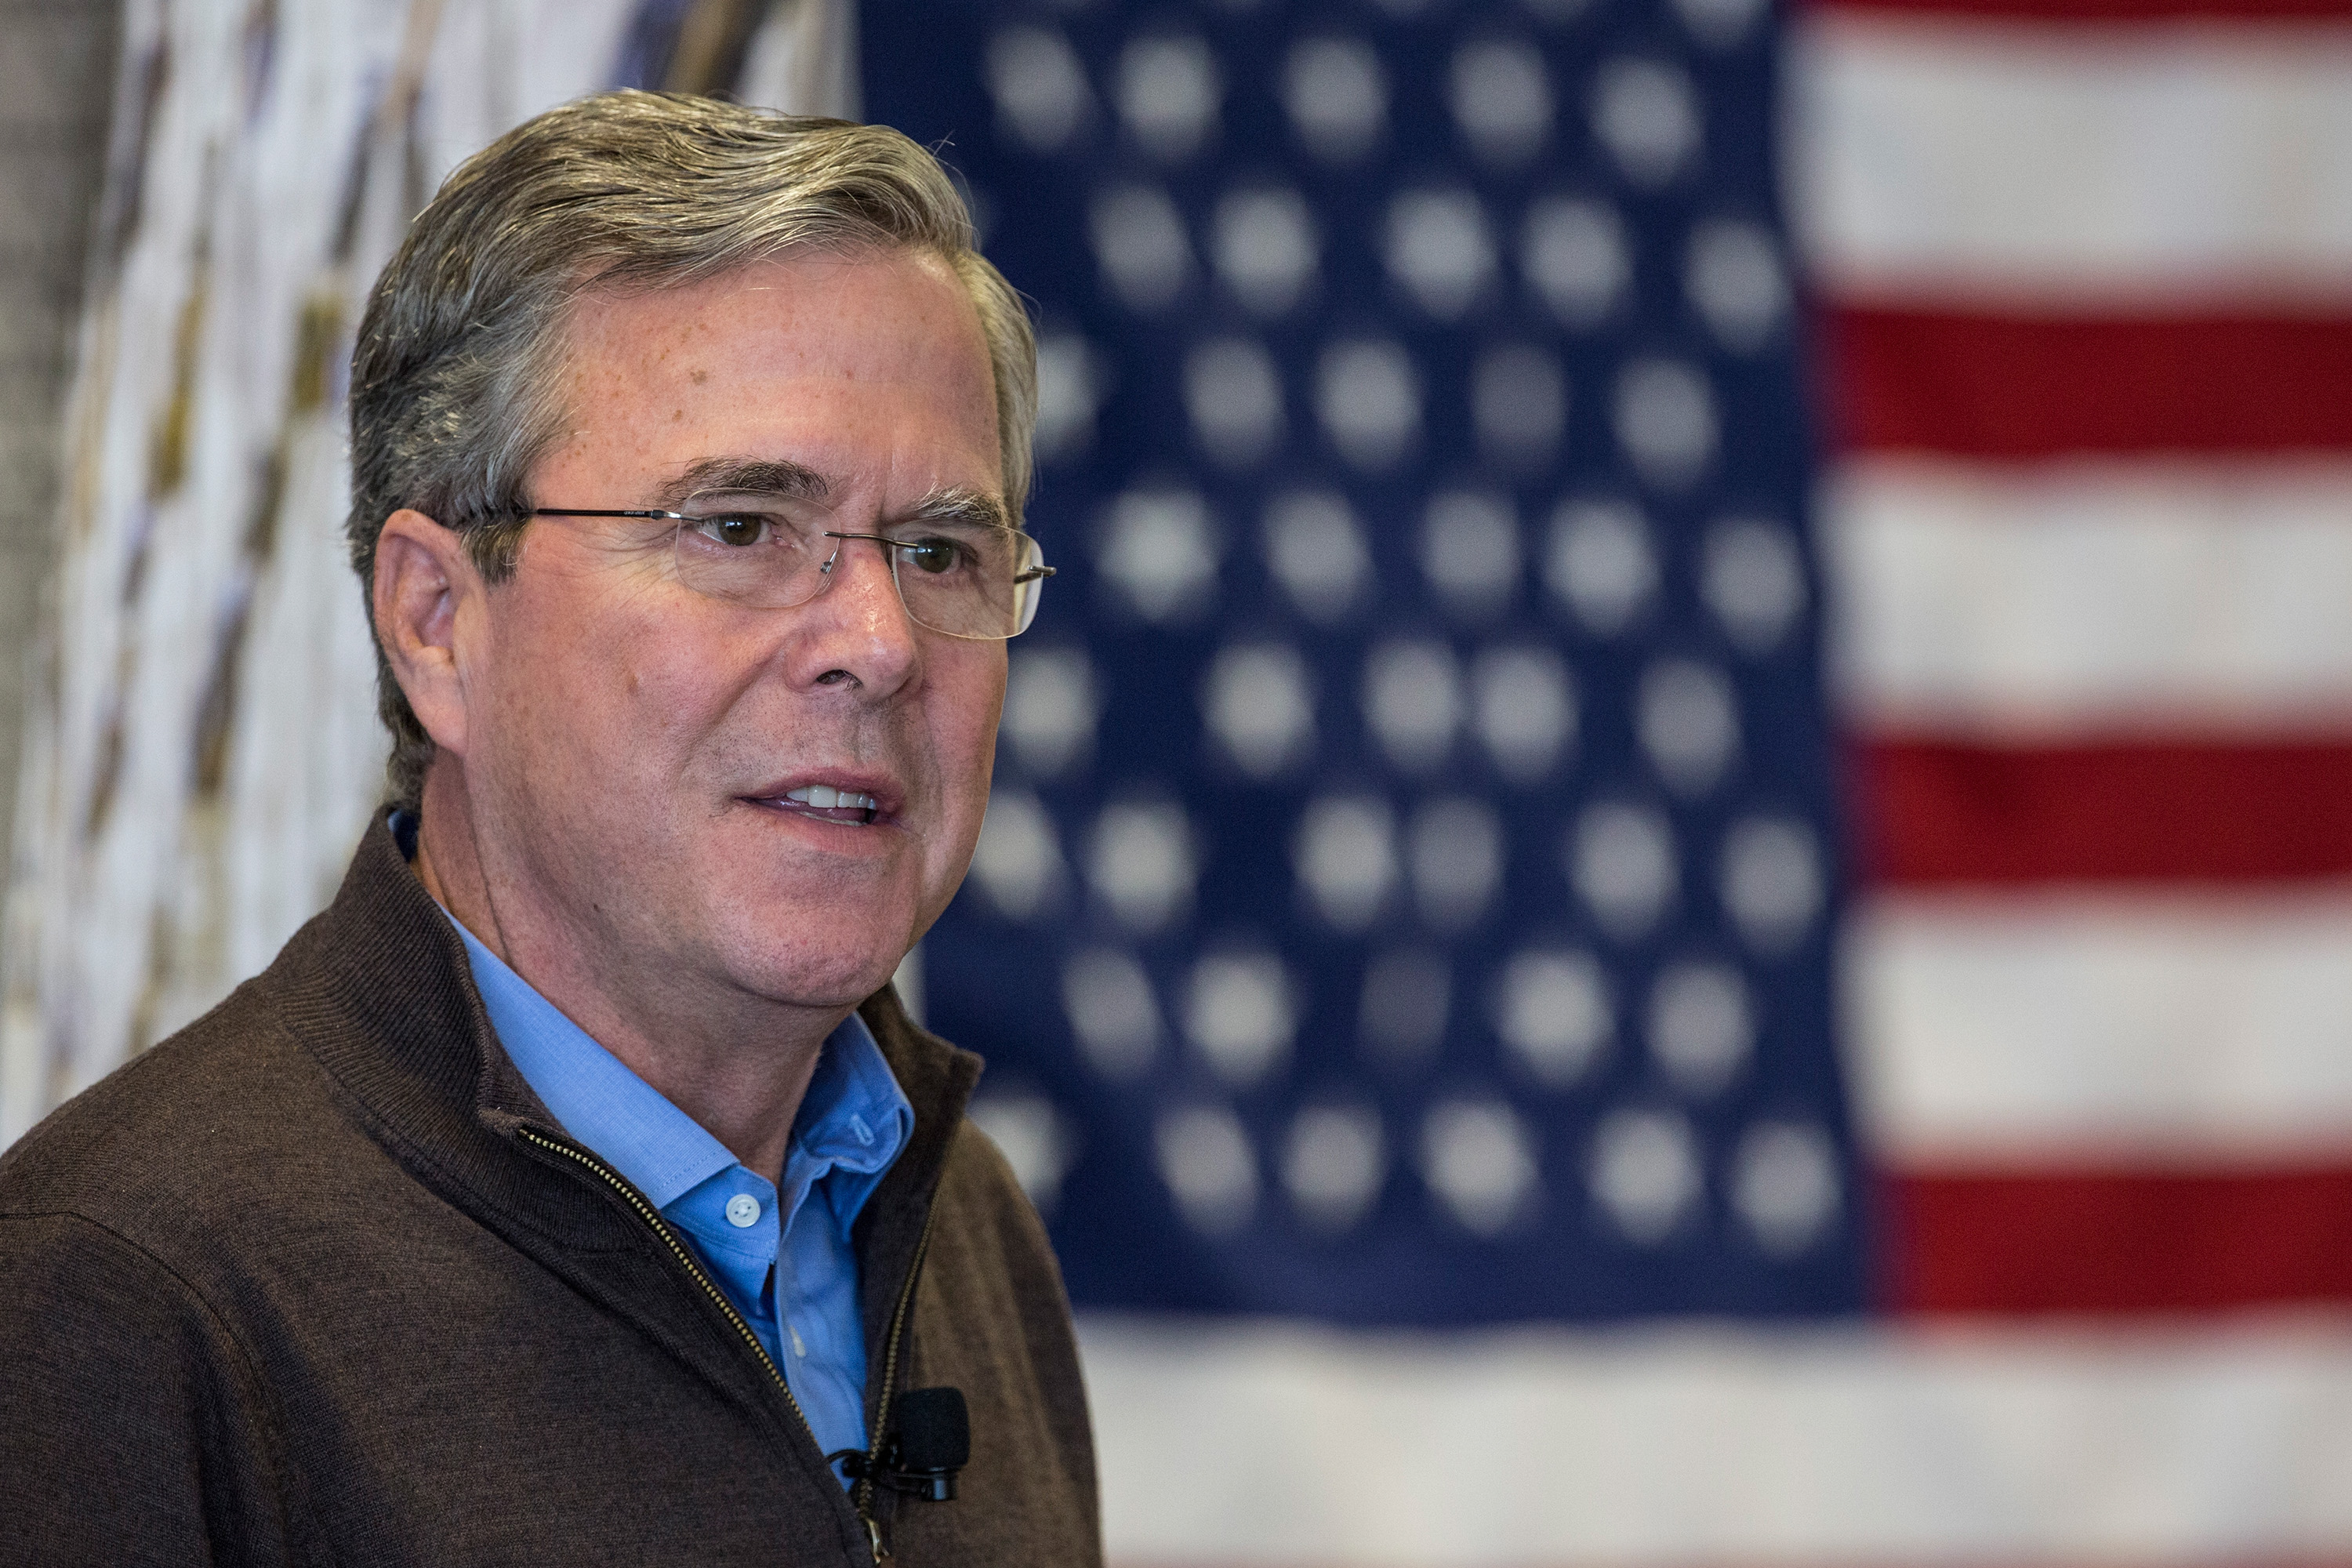 Jeb Bush Tweets a Photo of a Gun With His Name Engraved on It